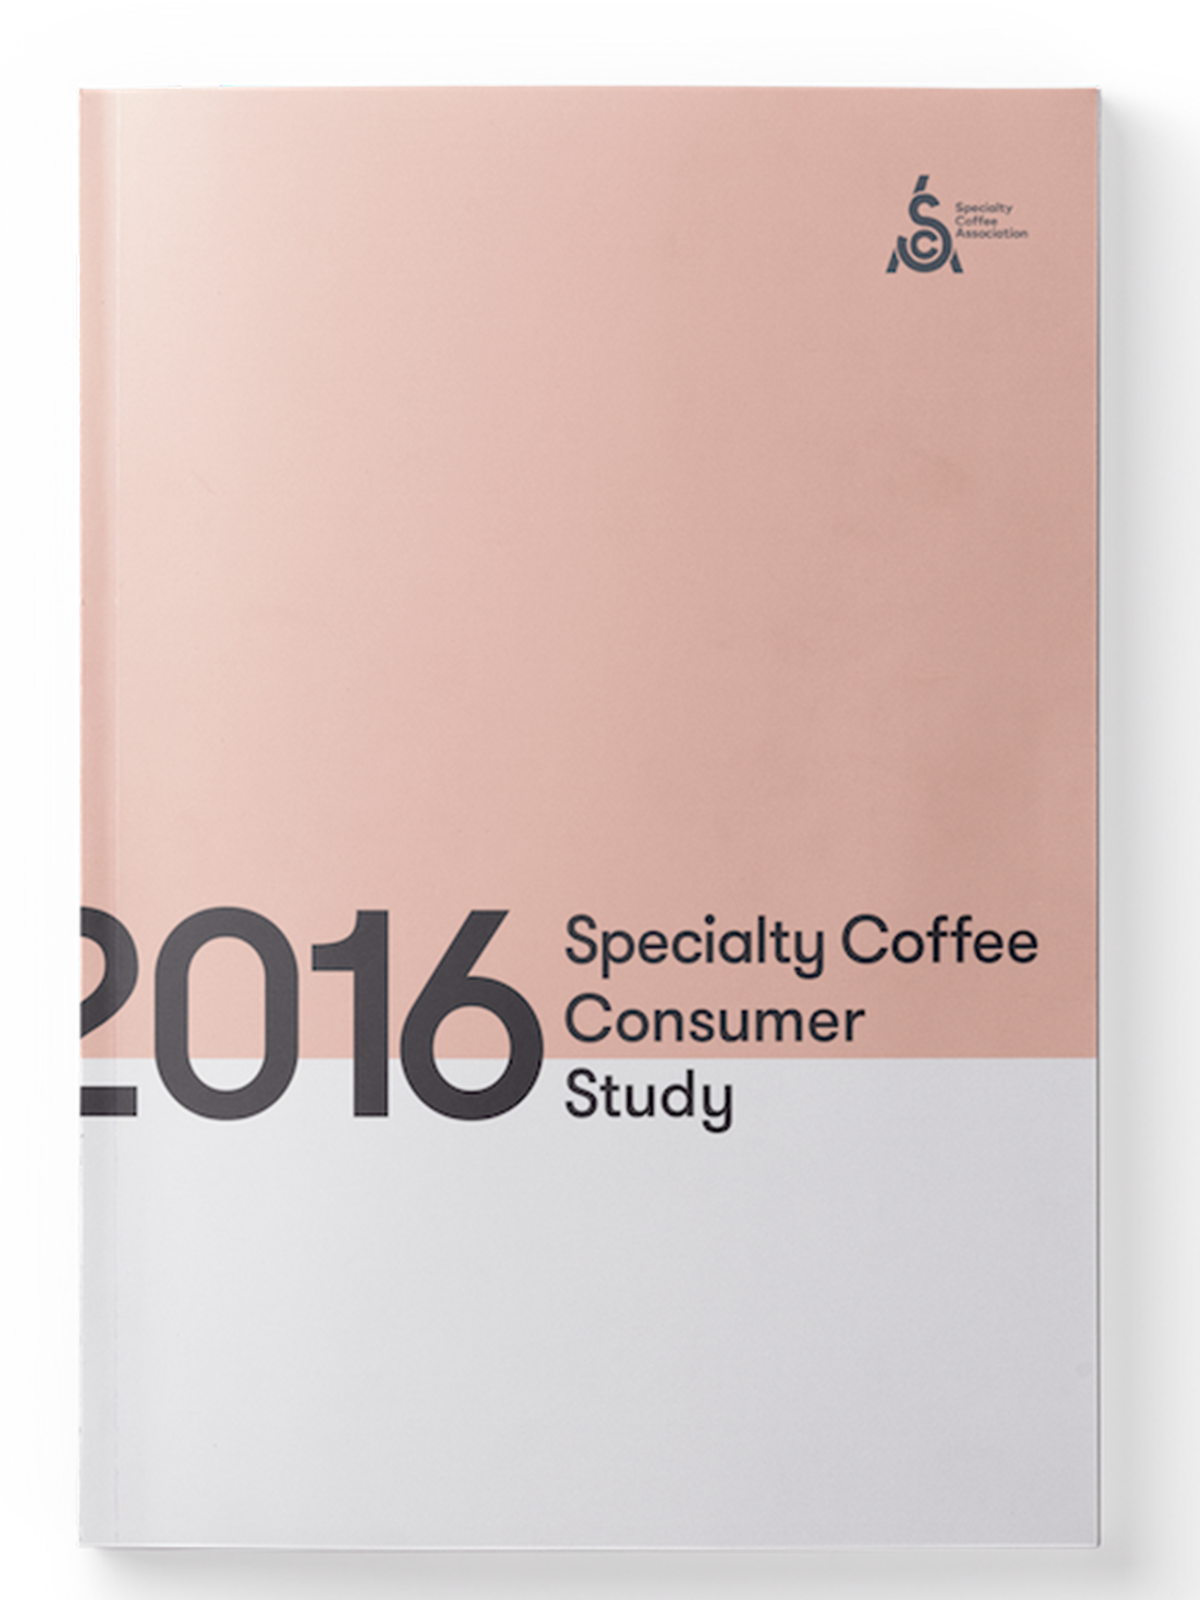 Quantitative Study: Specialty Coffee Consumer Behaviors, Motivations, and Perceptions   A data-based study aimed at determining the specialty coffee consumer's purchase behaviors and preferences, with a special focus on generational patterns and market segments.   Buy Now